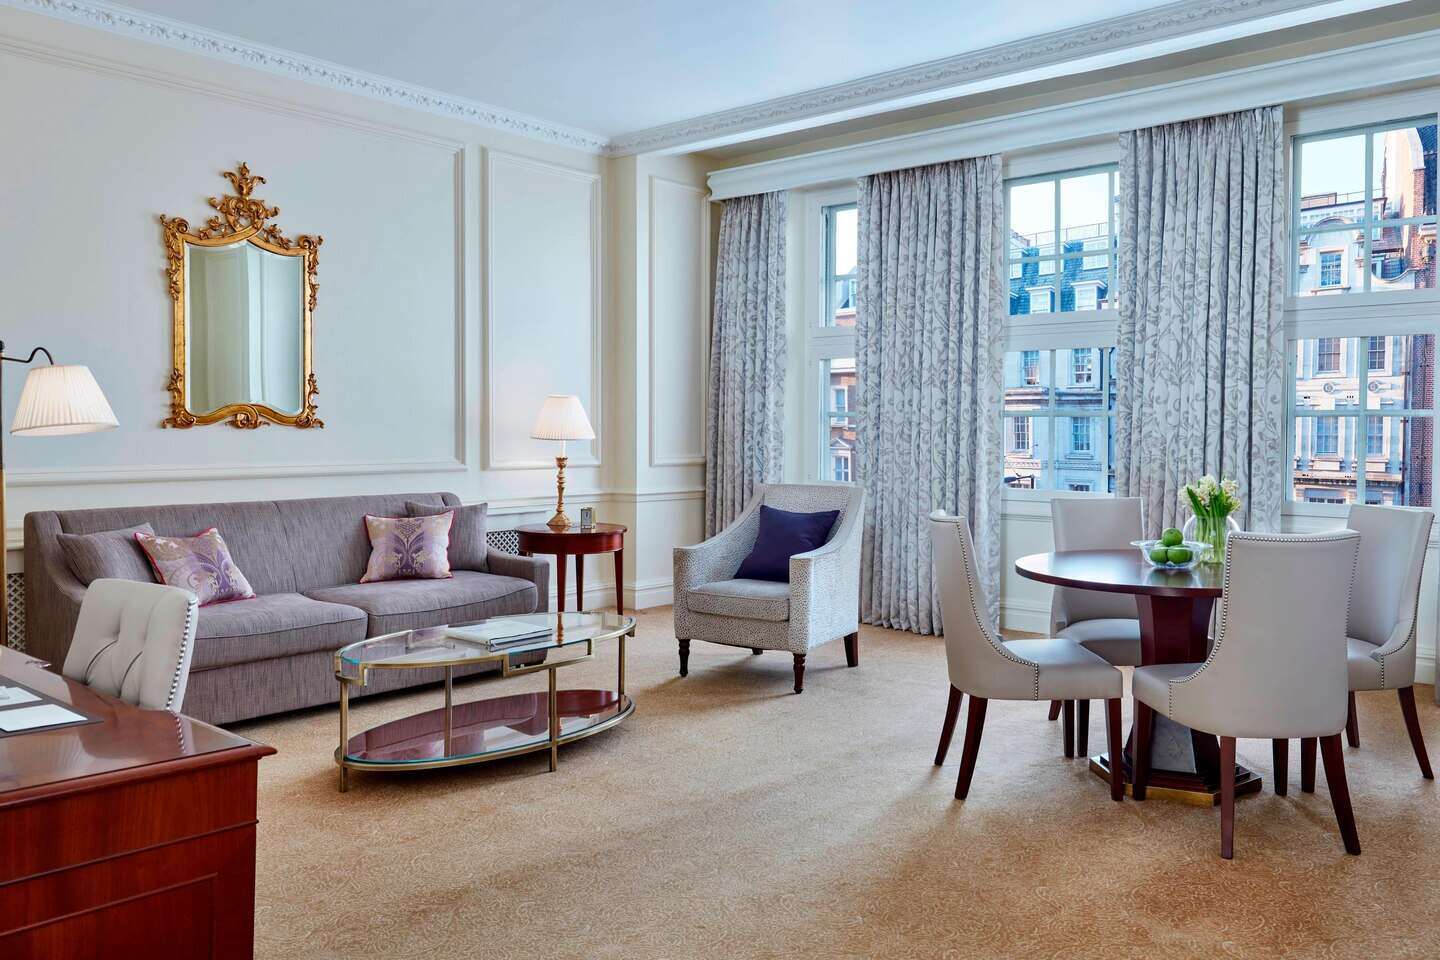 Luxury vacation rentals europe - United kingdom - London area - Grand residences by marriott mayfair - Premium 1 BDM - Image 1/7